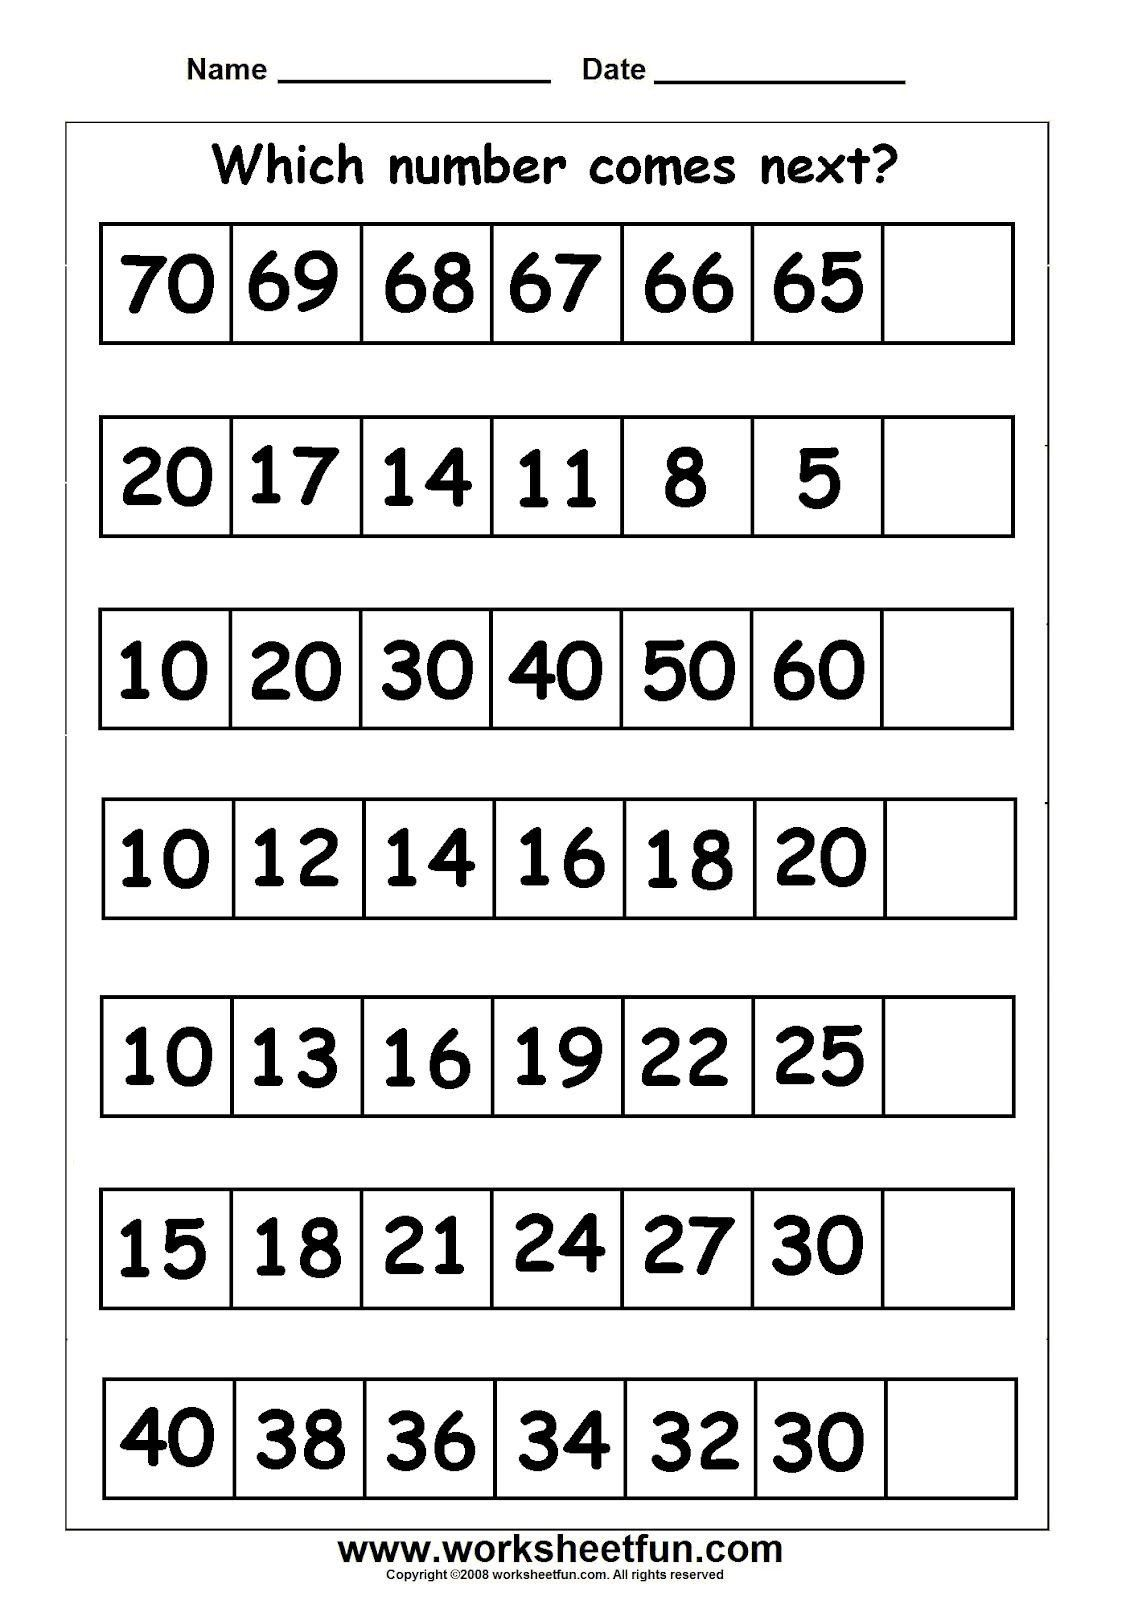 Sequencing Worksheet 2nd Grade 7 1 5 Counting Number Of